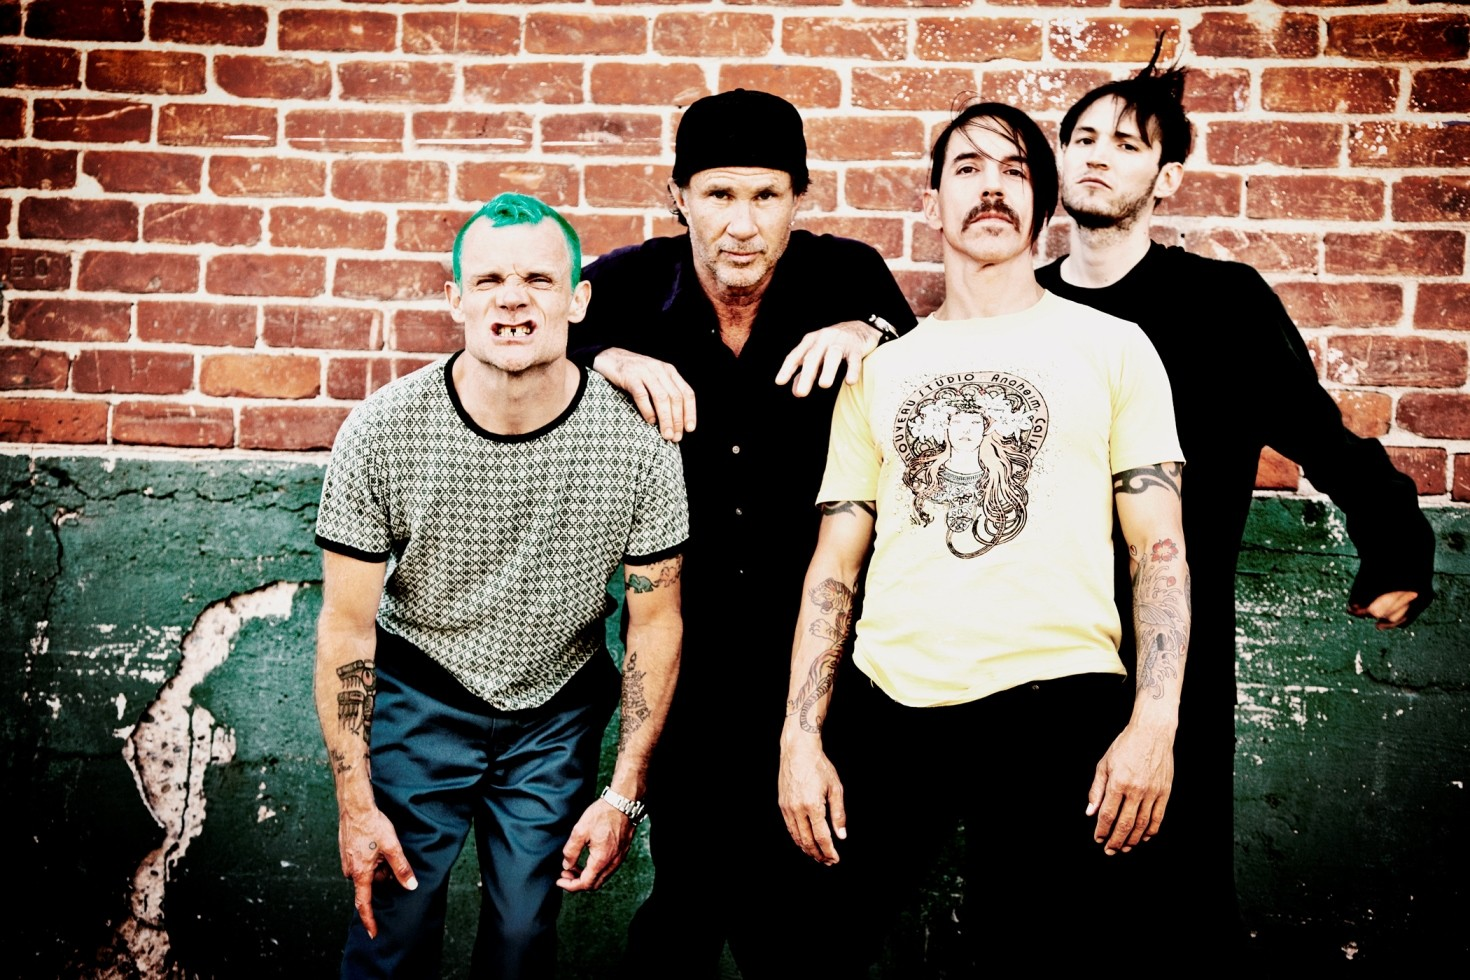 Red Hot Chili Peppers libera 'We Turn Red', faixa do disco 'The Getaway' (Foto: Divulgao)